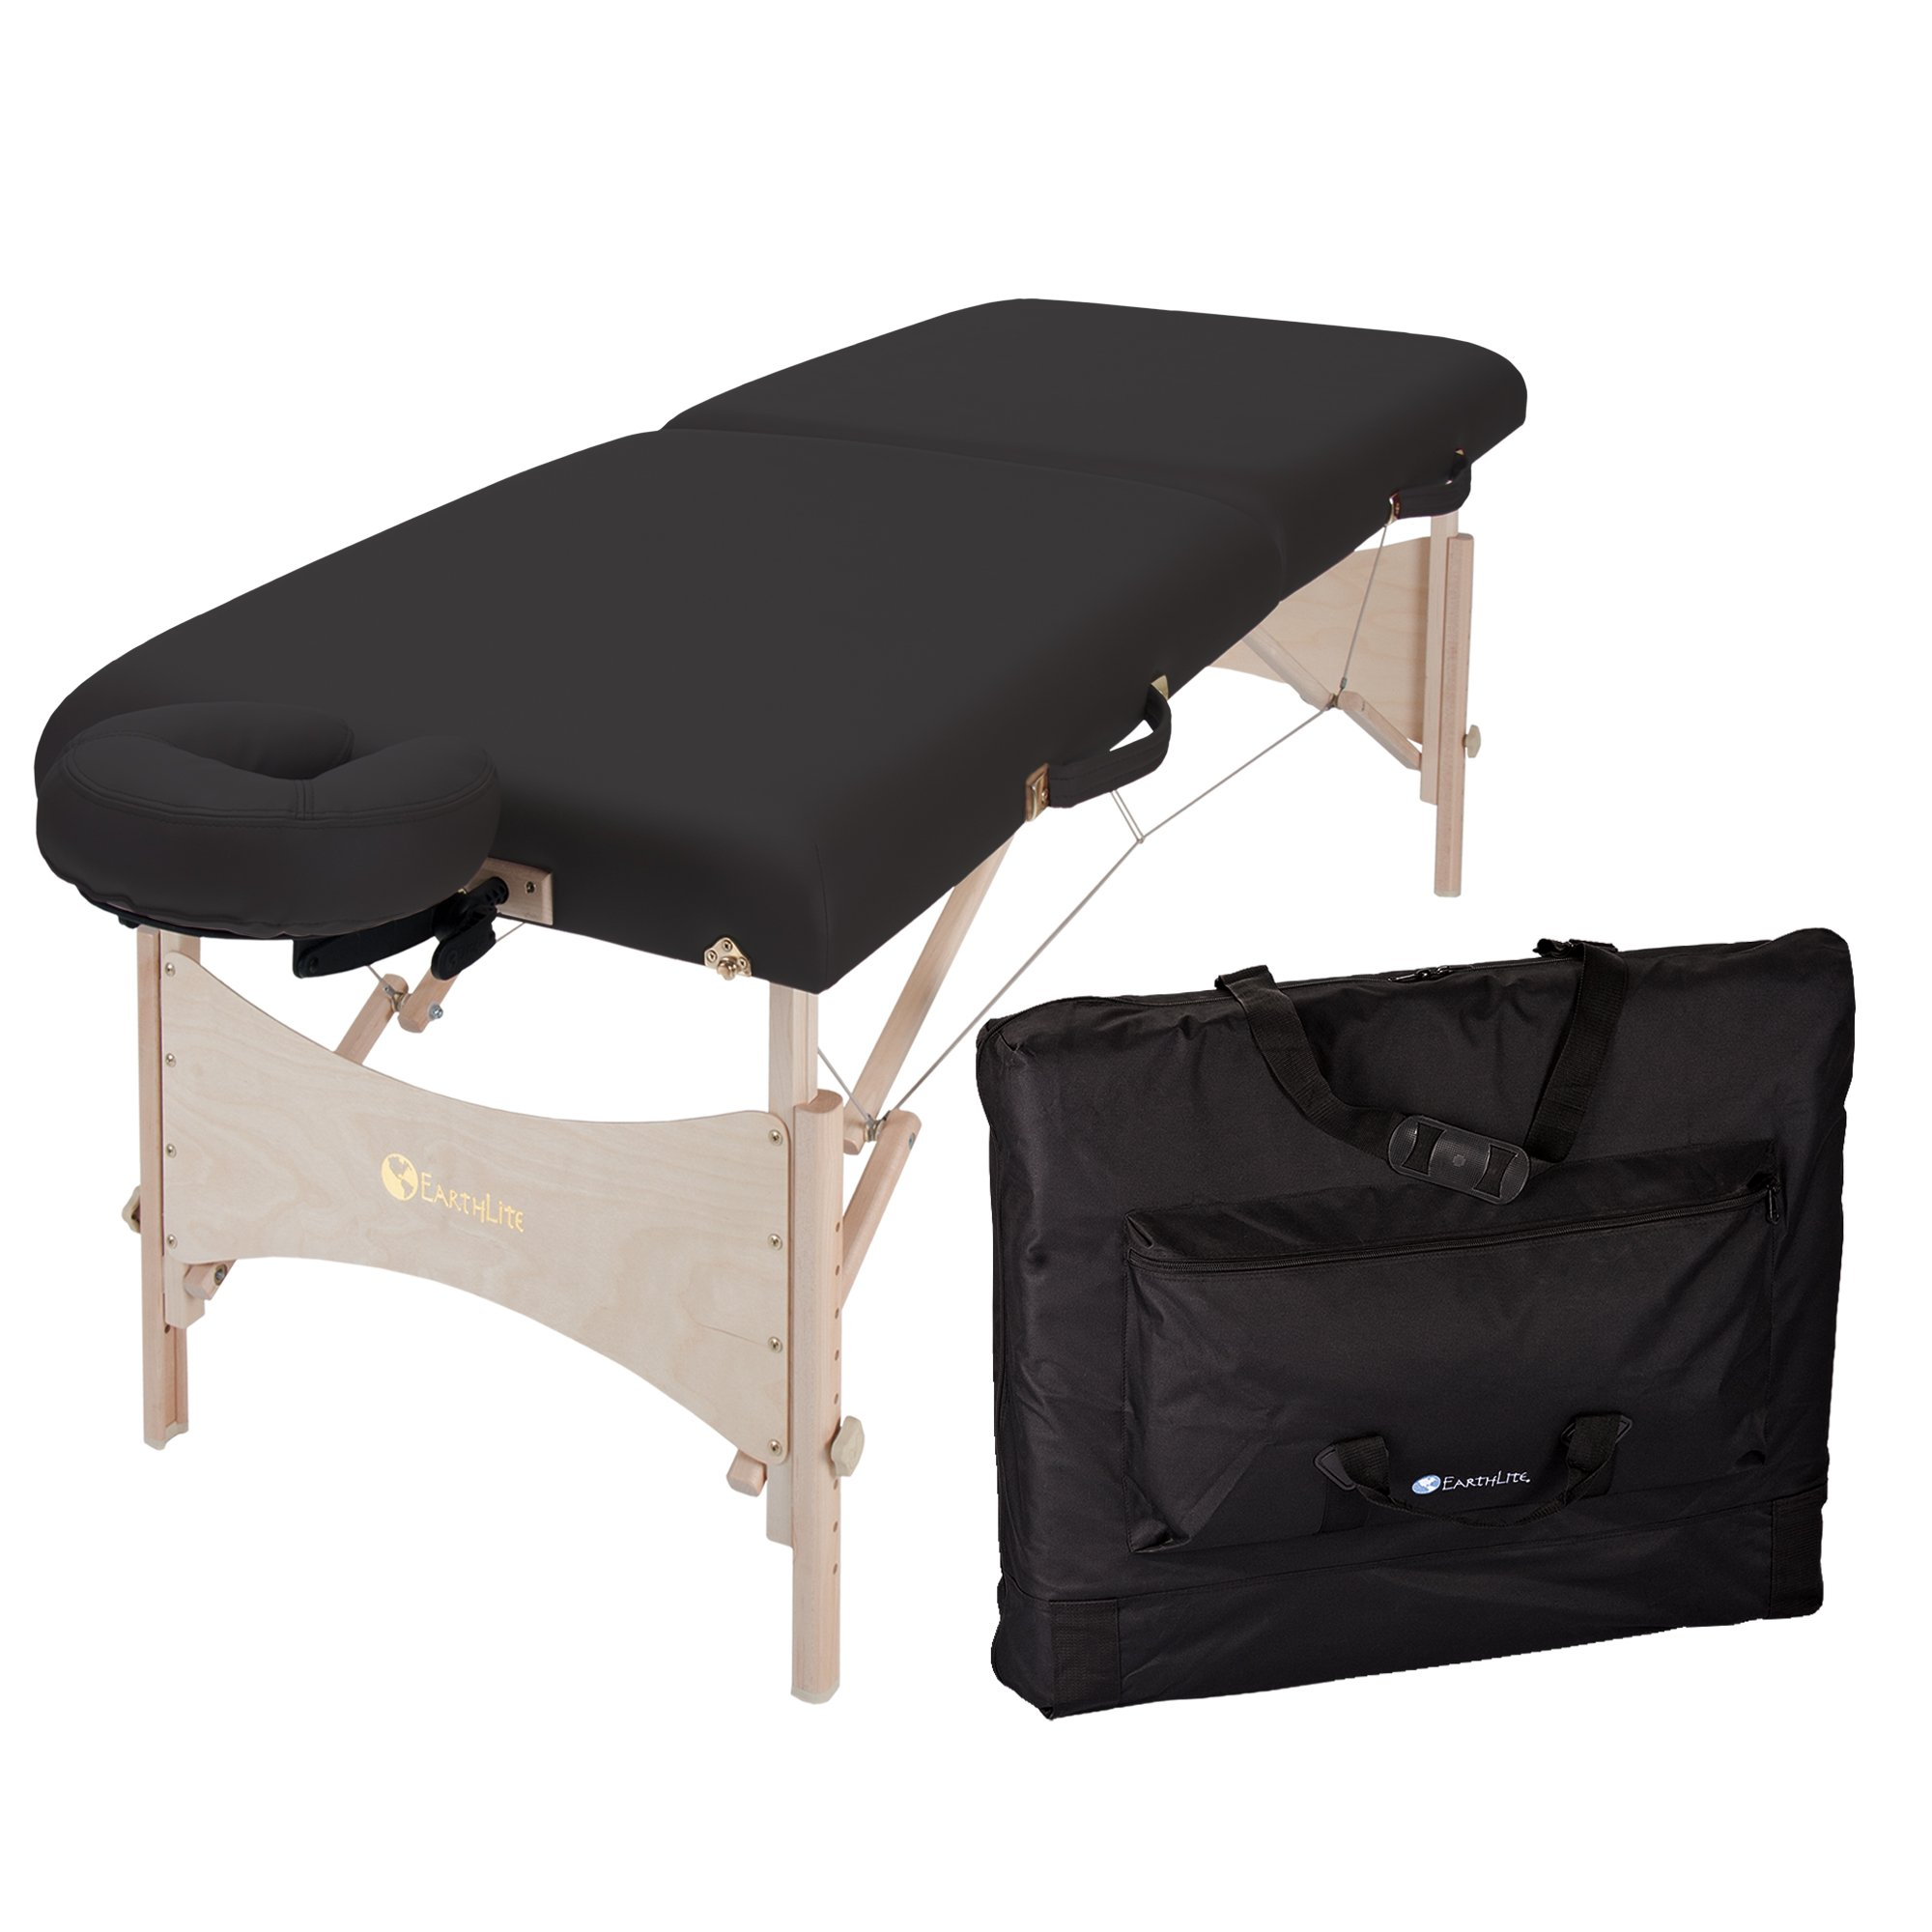 EARTHLITE Harmony DX Portable Massage Table Package – Eco-Friendly Design, Deluxe Adjustable Headrest, Hard Maple, Aircraft Quality, up to 600 lbs by Earthlite (Image #4)